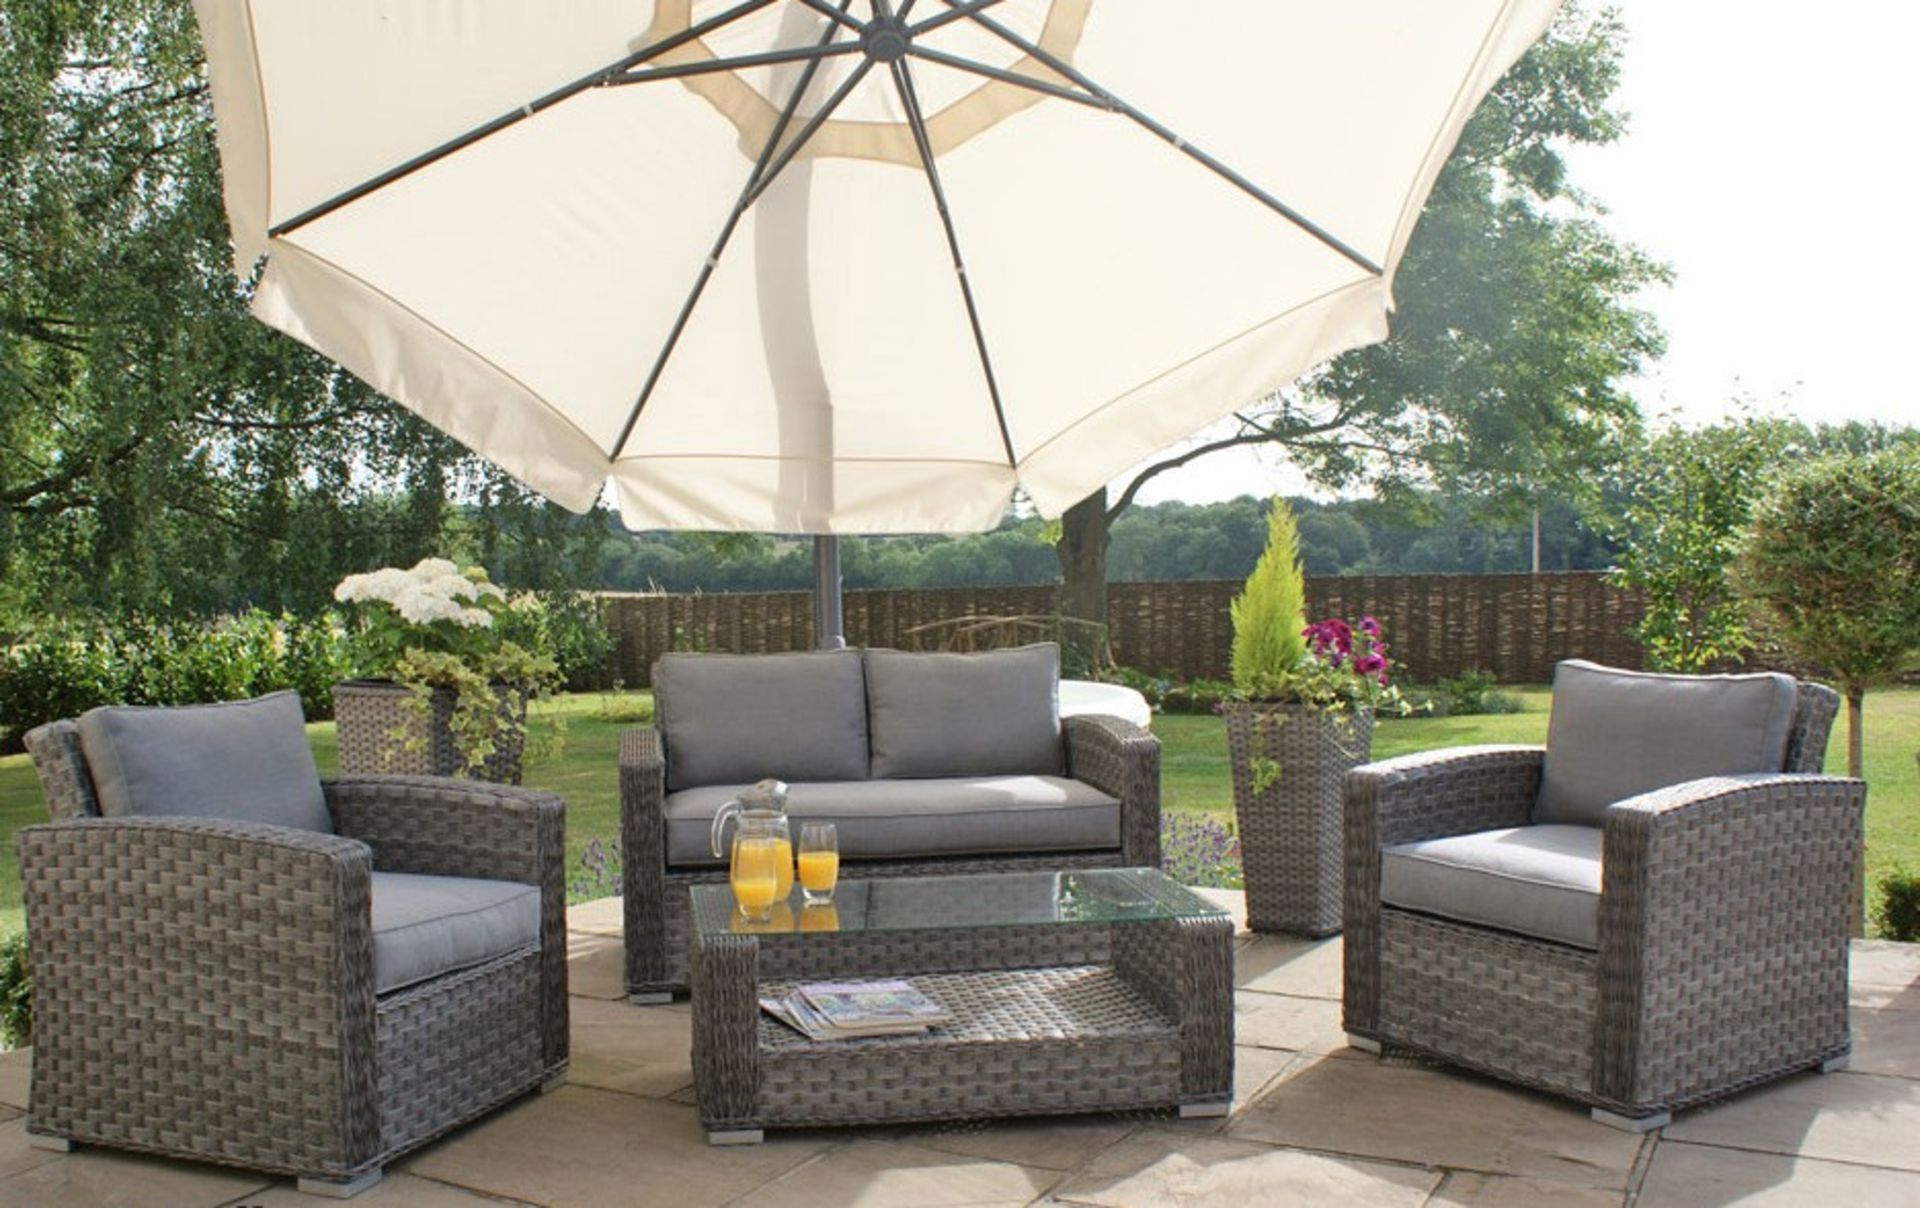 Lot 50015 - V Brand New Chelsea Garden Company Four Piece Grey Rattan Outdoor Sofa Set - Includes Two Single